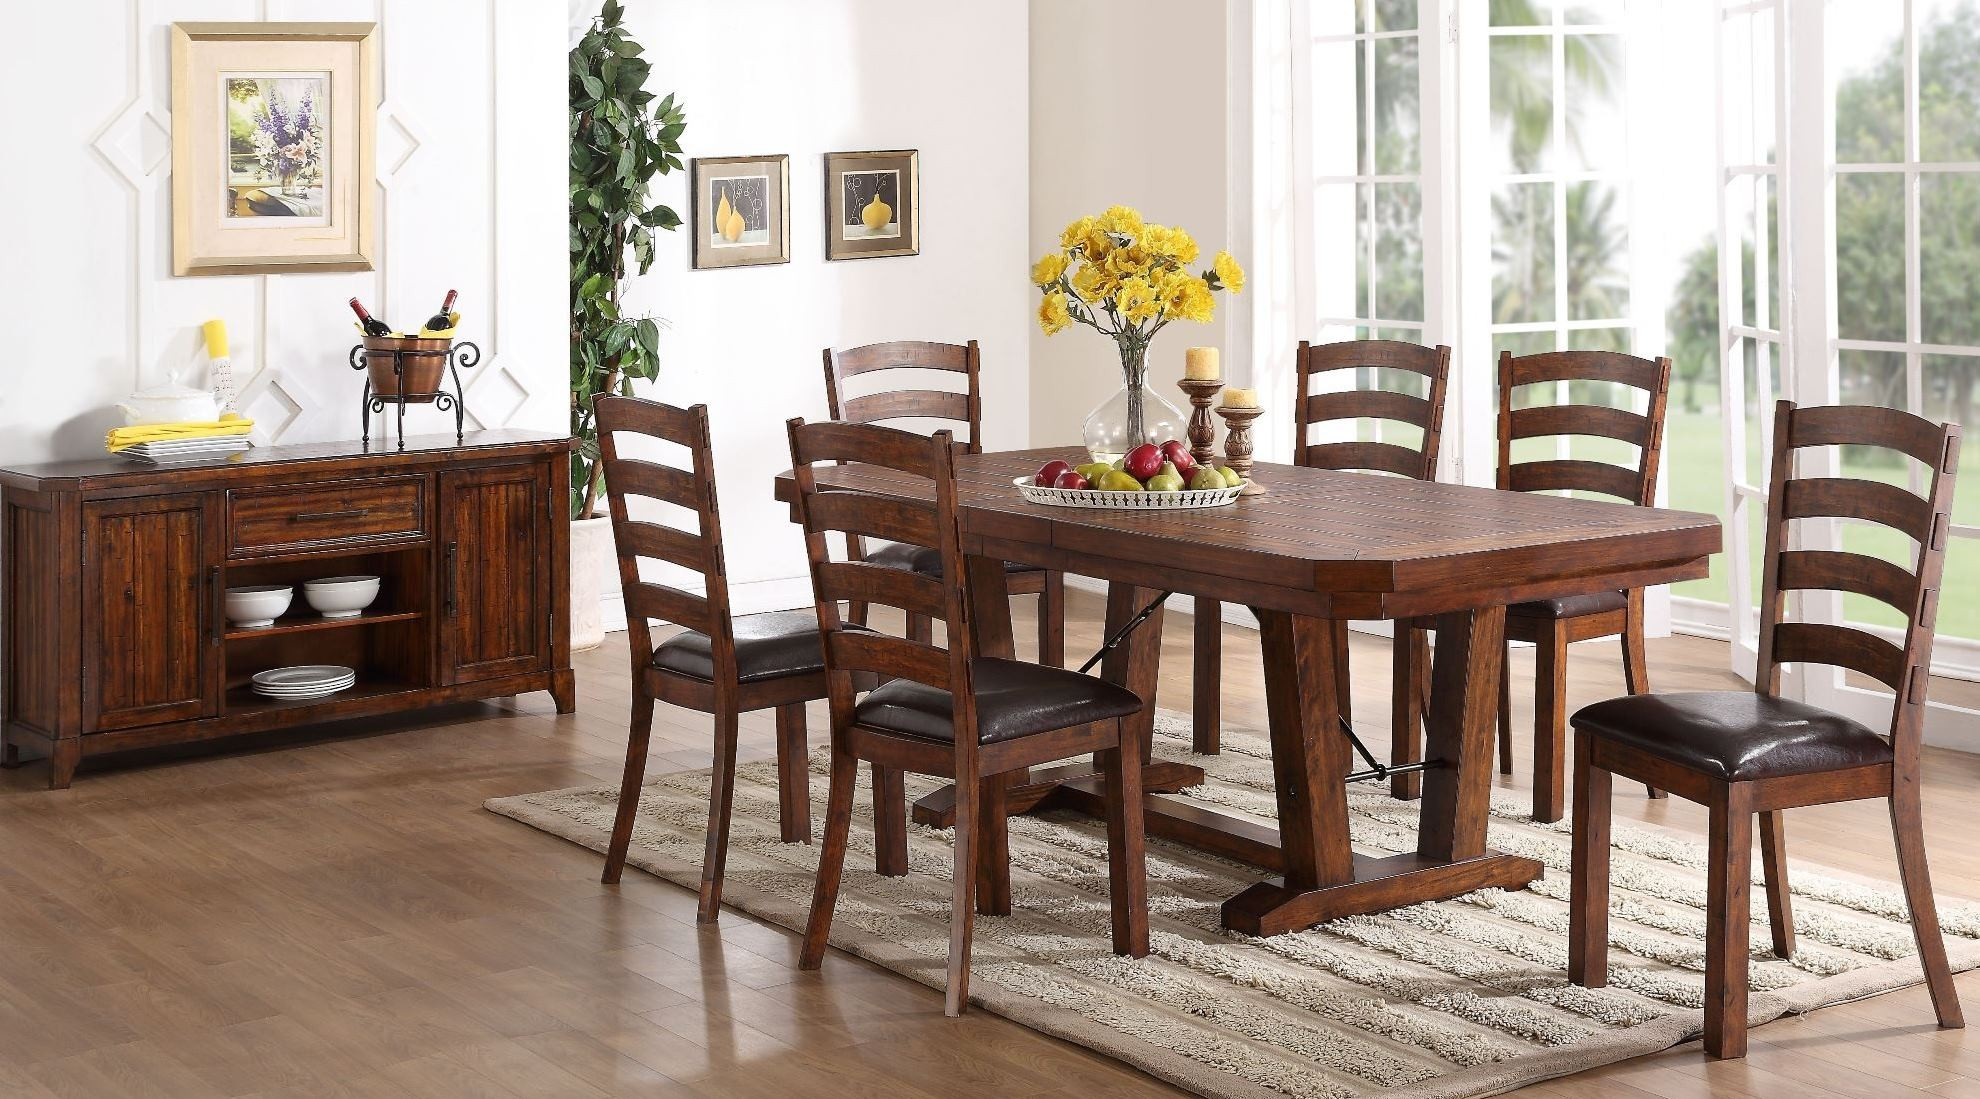 lanesboro distressed walnut dining room set from new